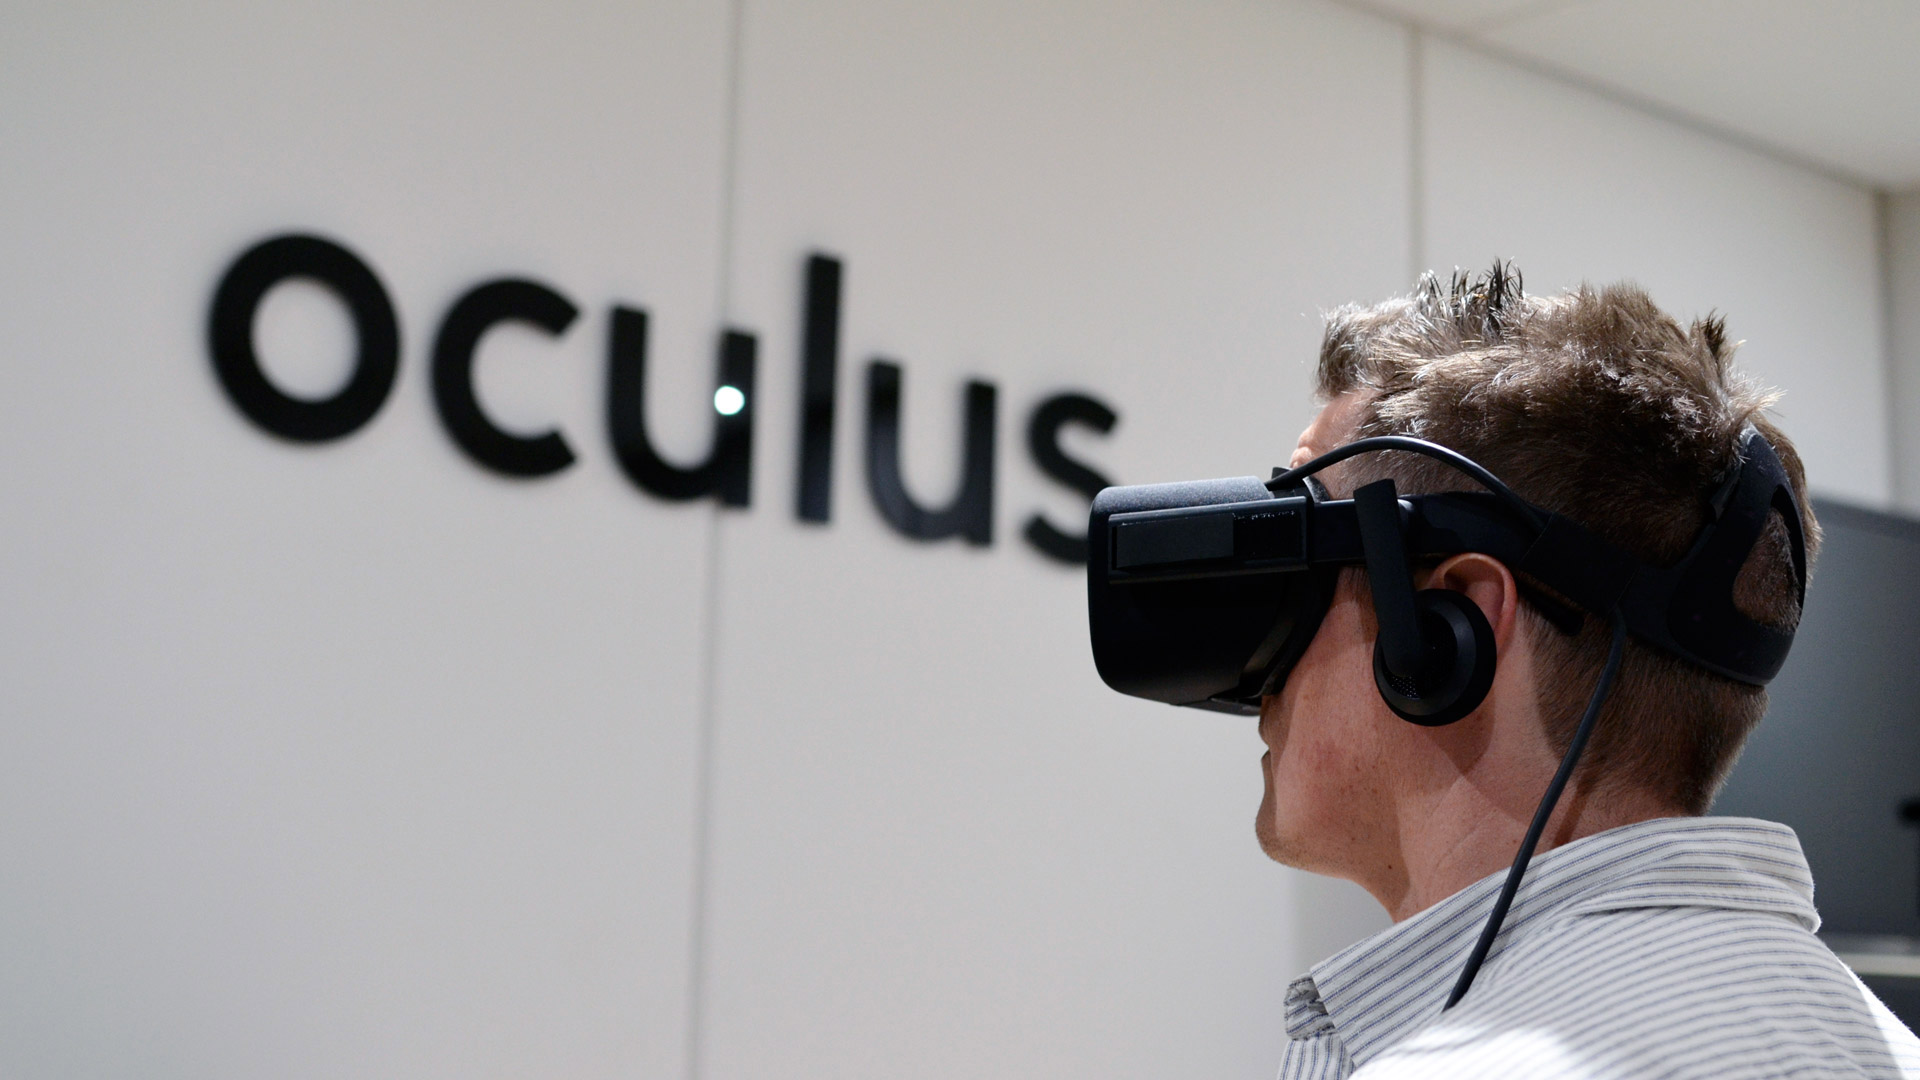 Rift S wäre der Name der nächsten Oculus Virtual Reality-Brille 1